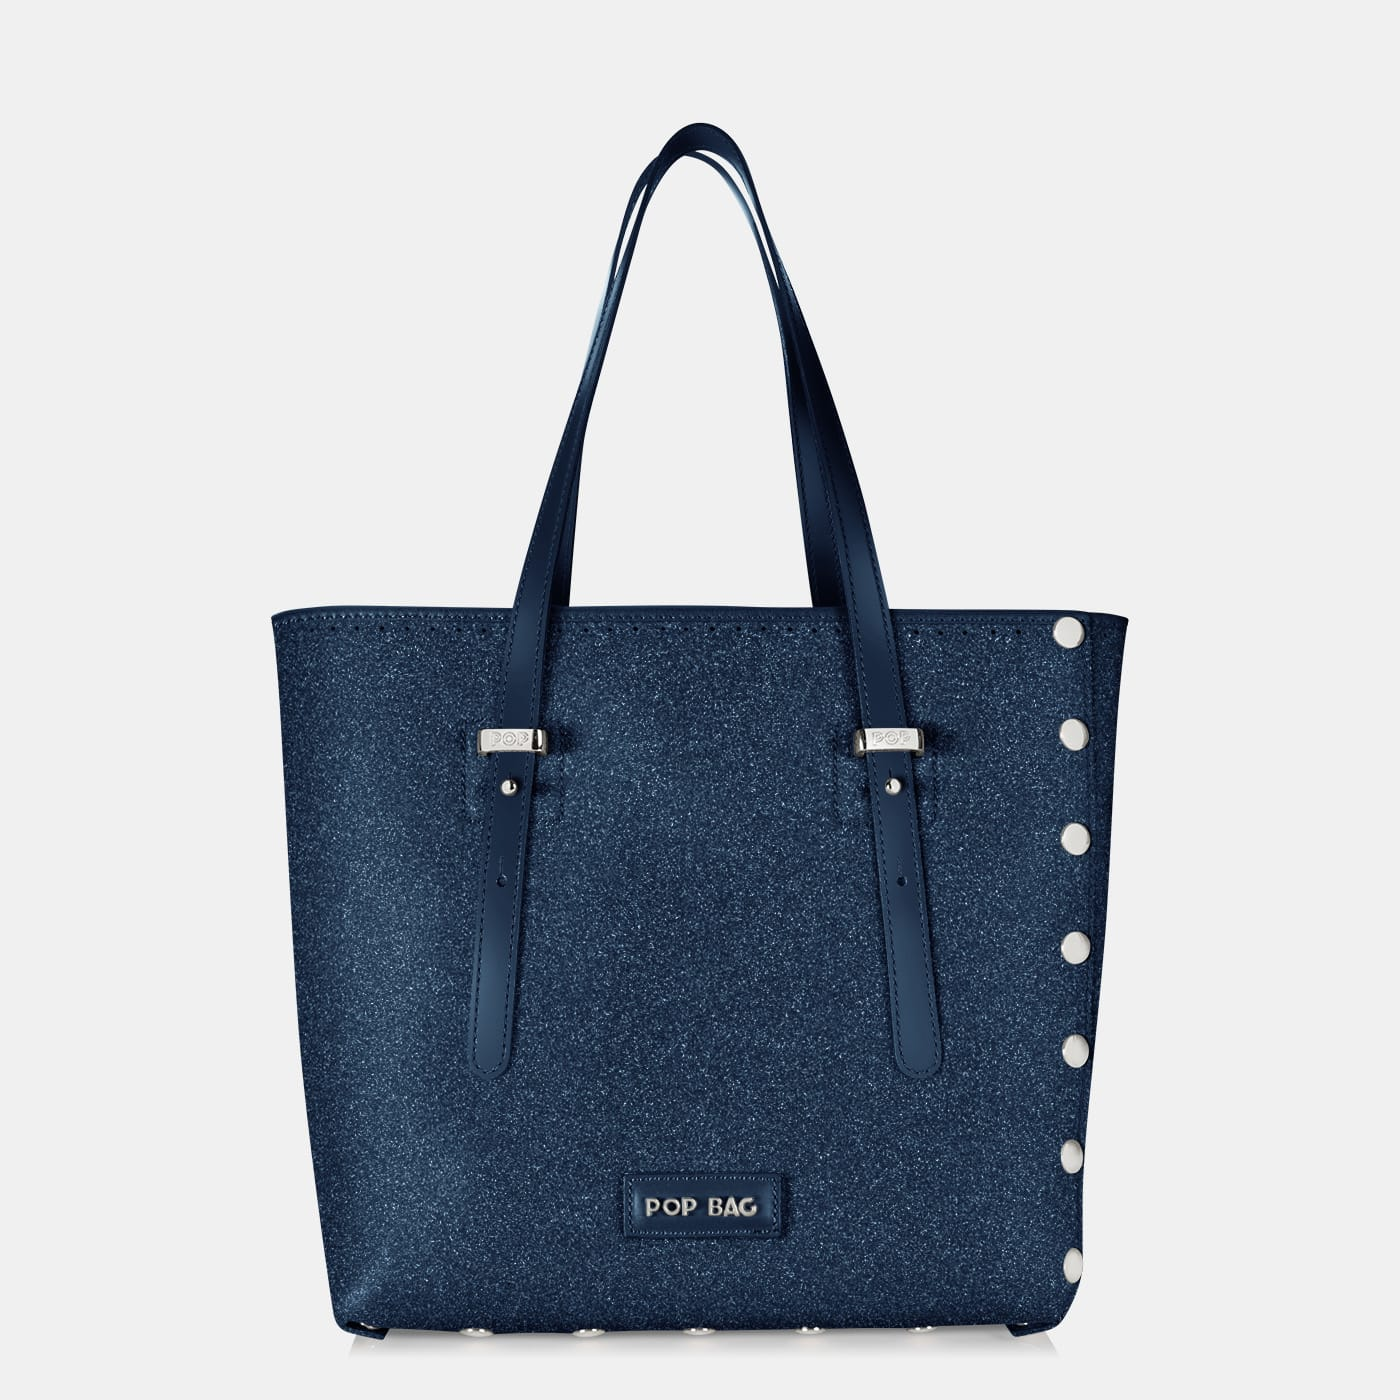 Pop Stardust Bag - Blue Glitter - Medium